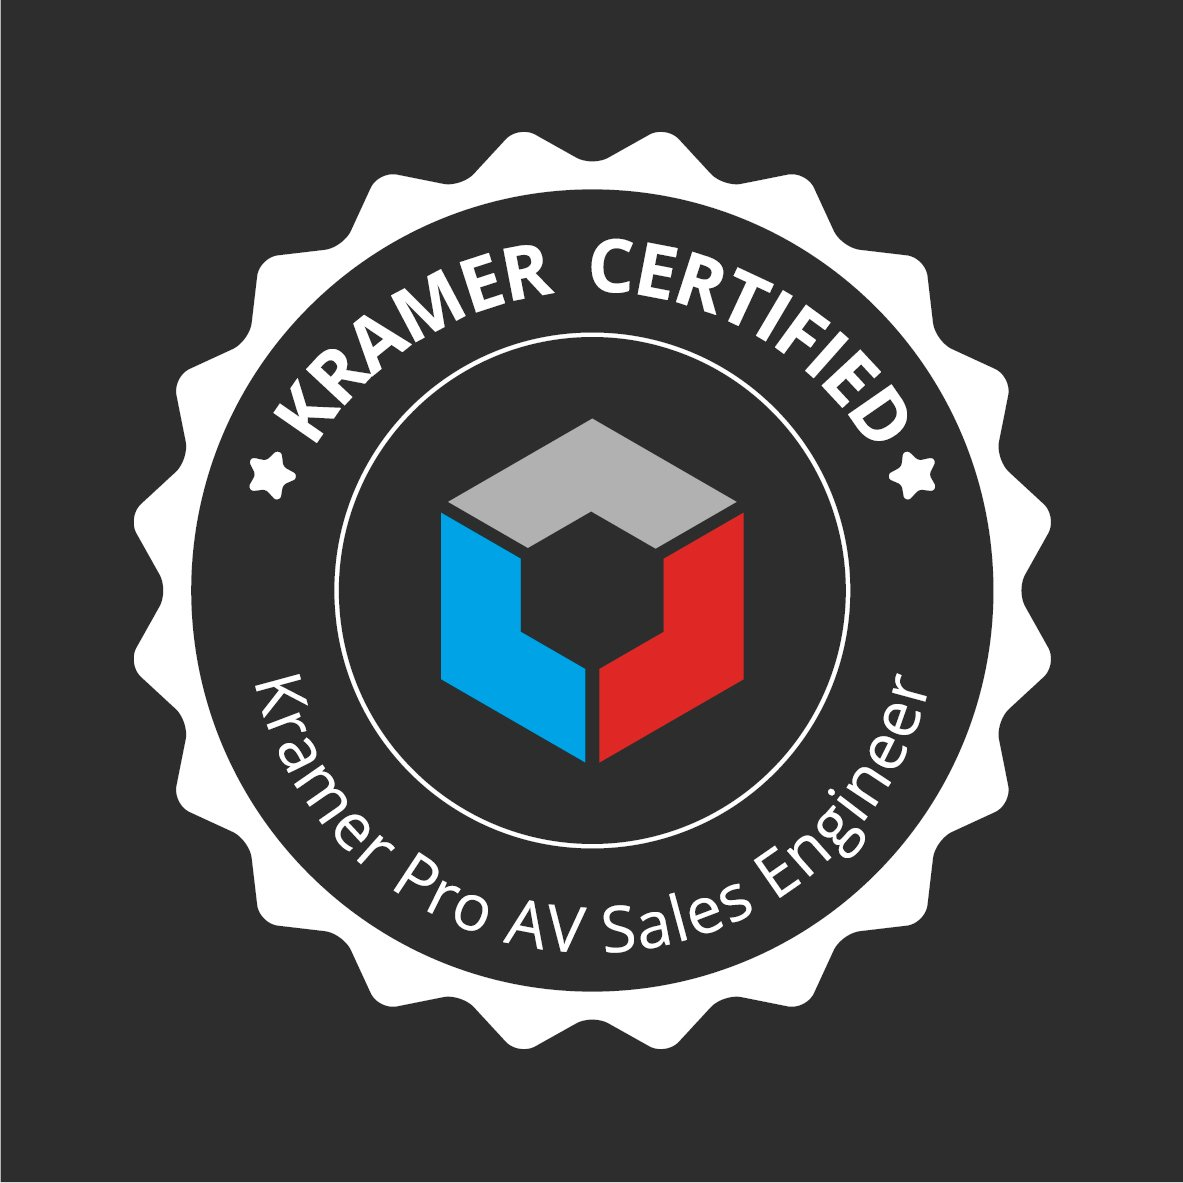 Kramer Pro AV Sales Engineer Certification